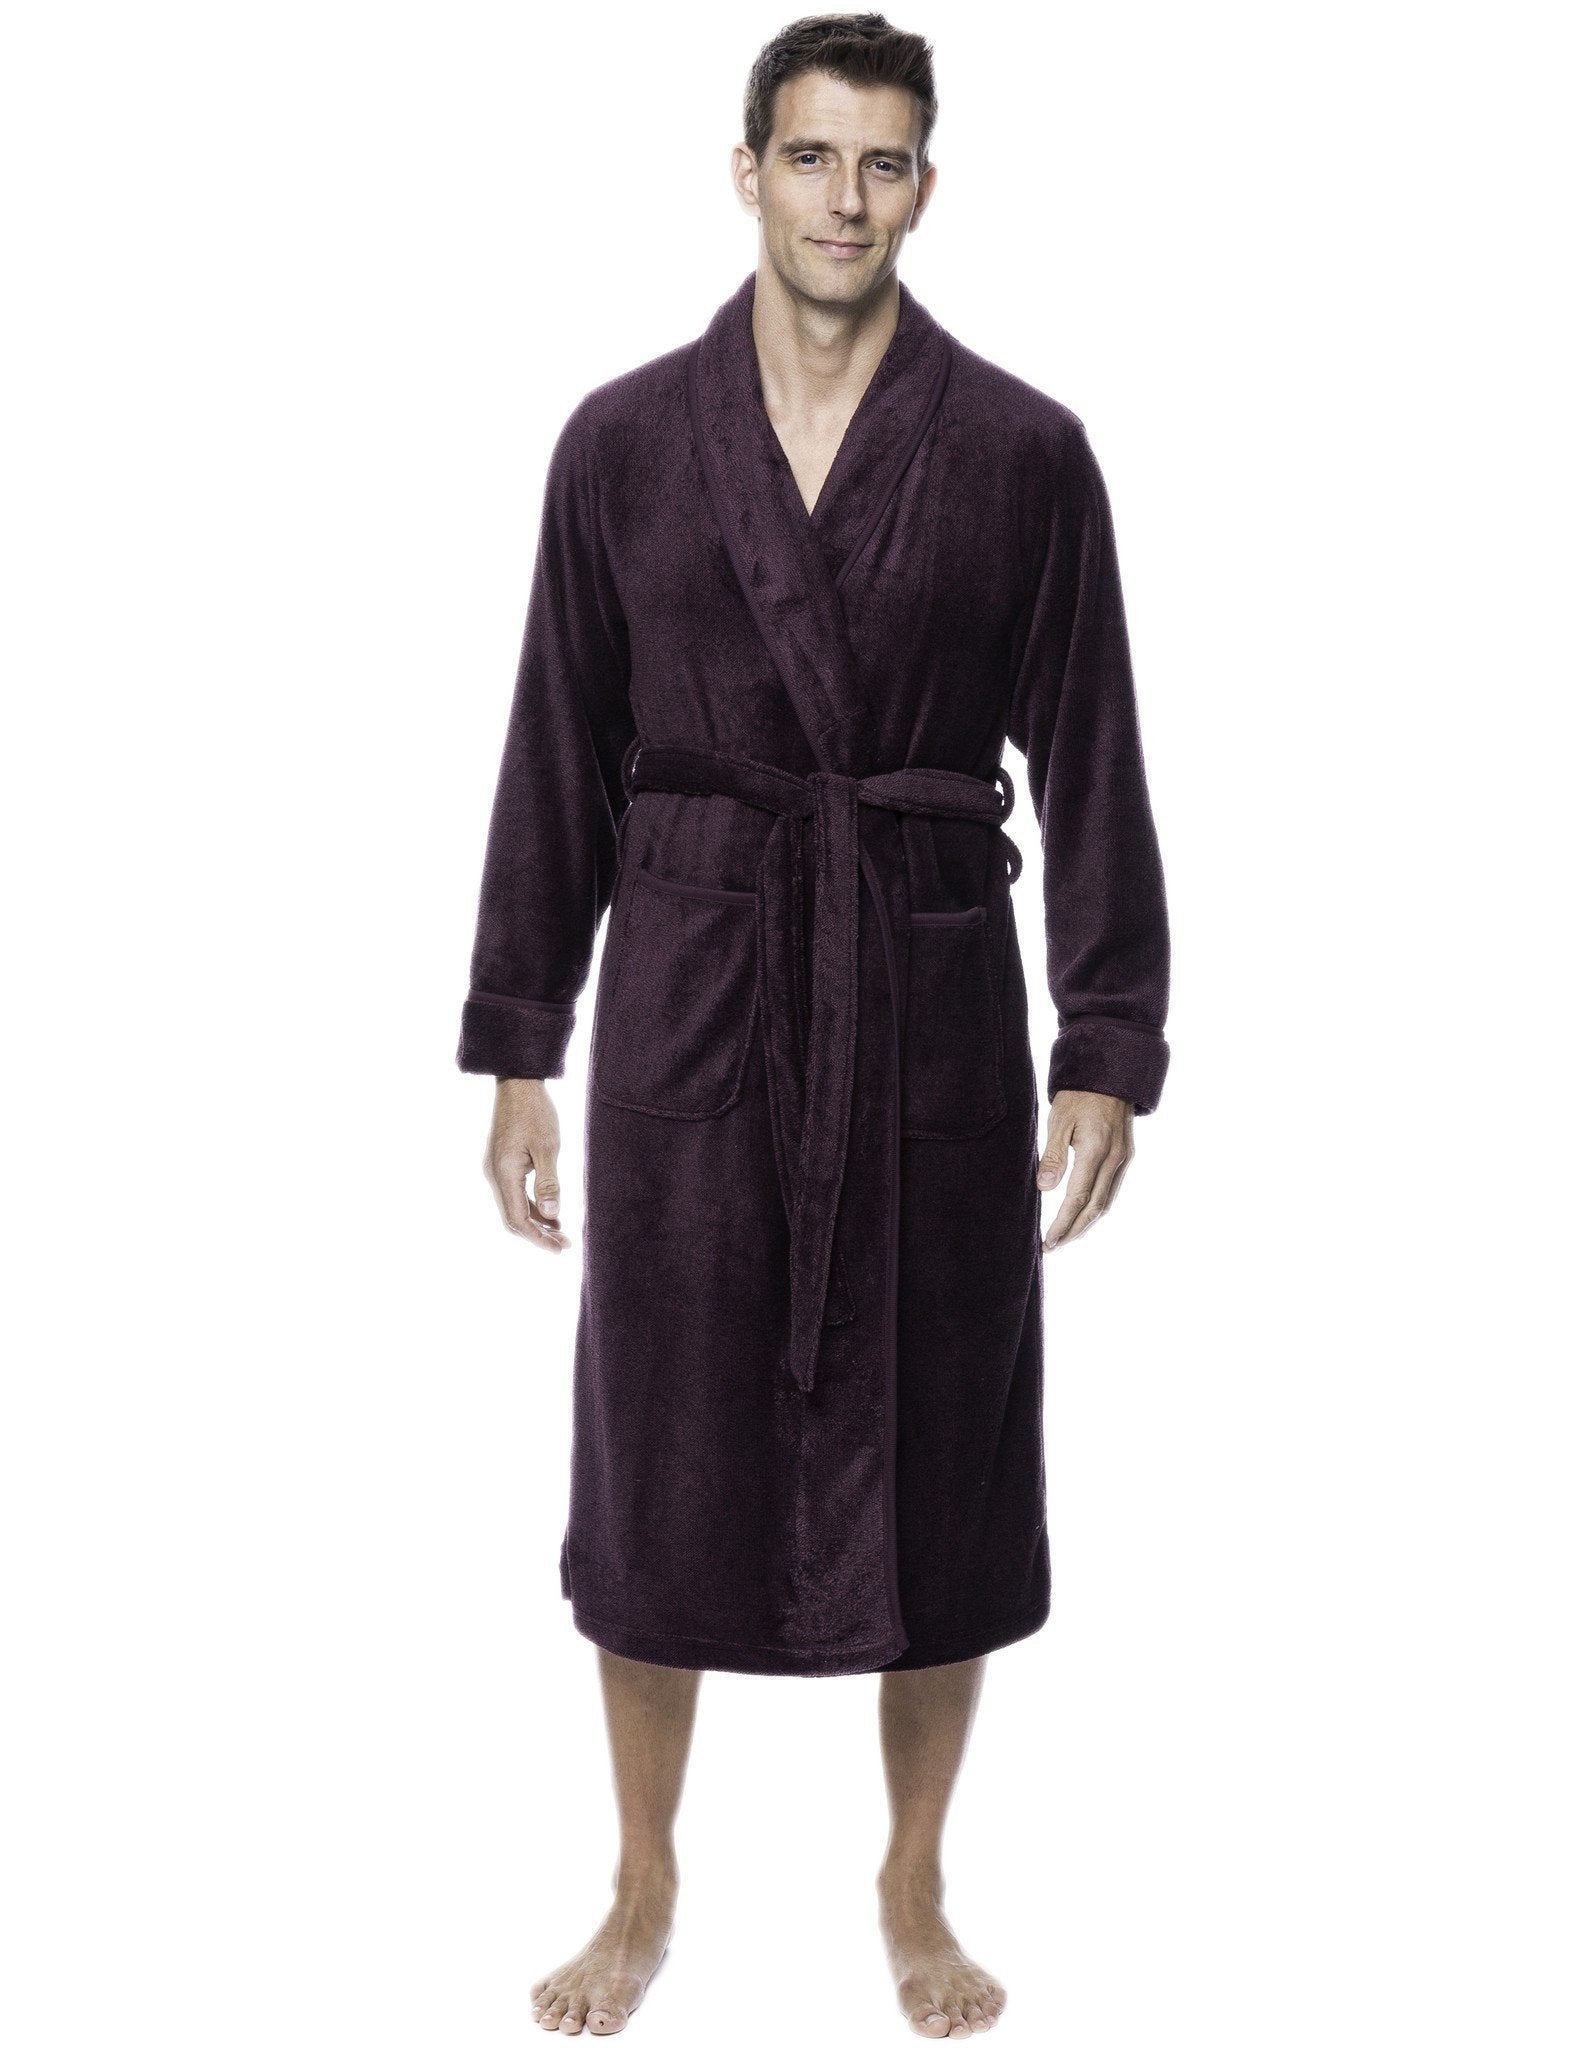 Men's Premium Coral Fleece Plush Spa/Bath Robe - Marl Fig/Black